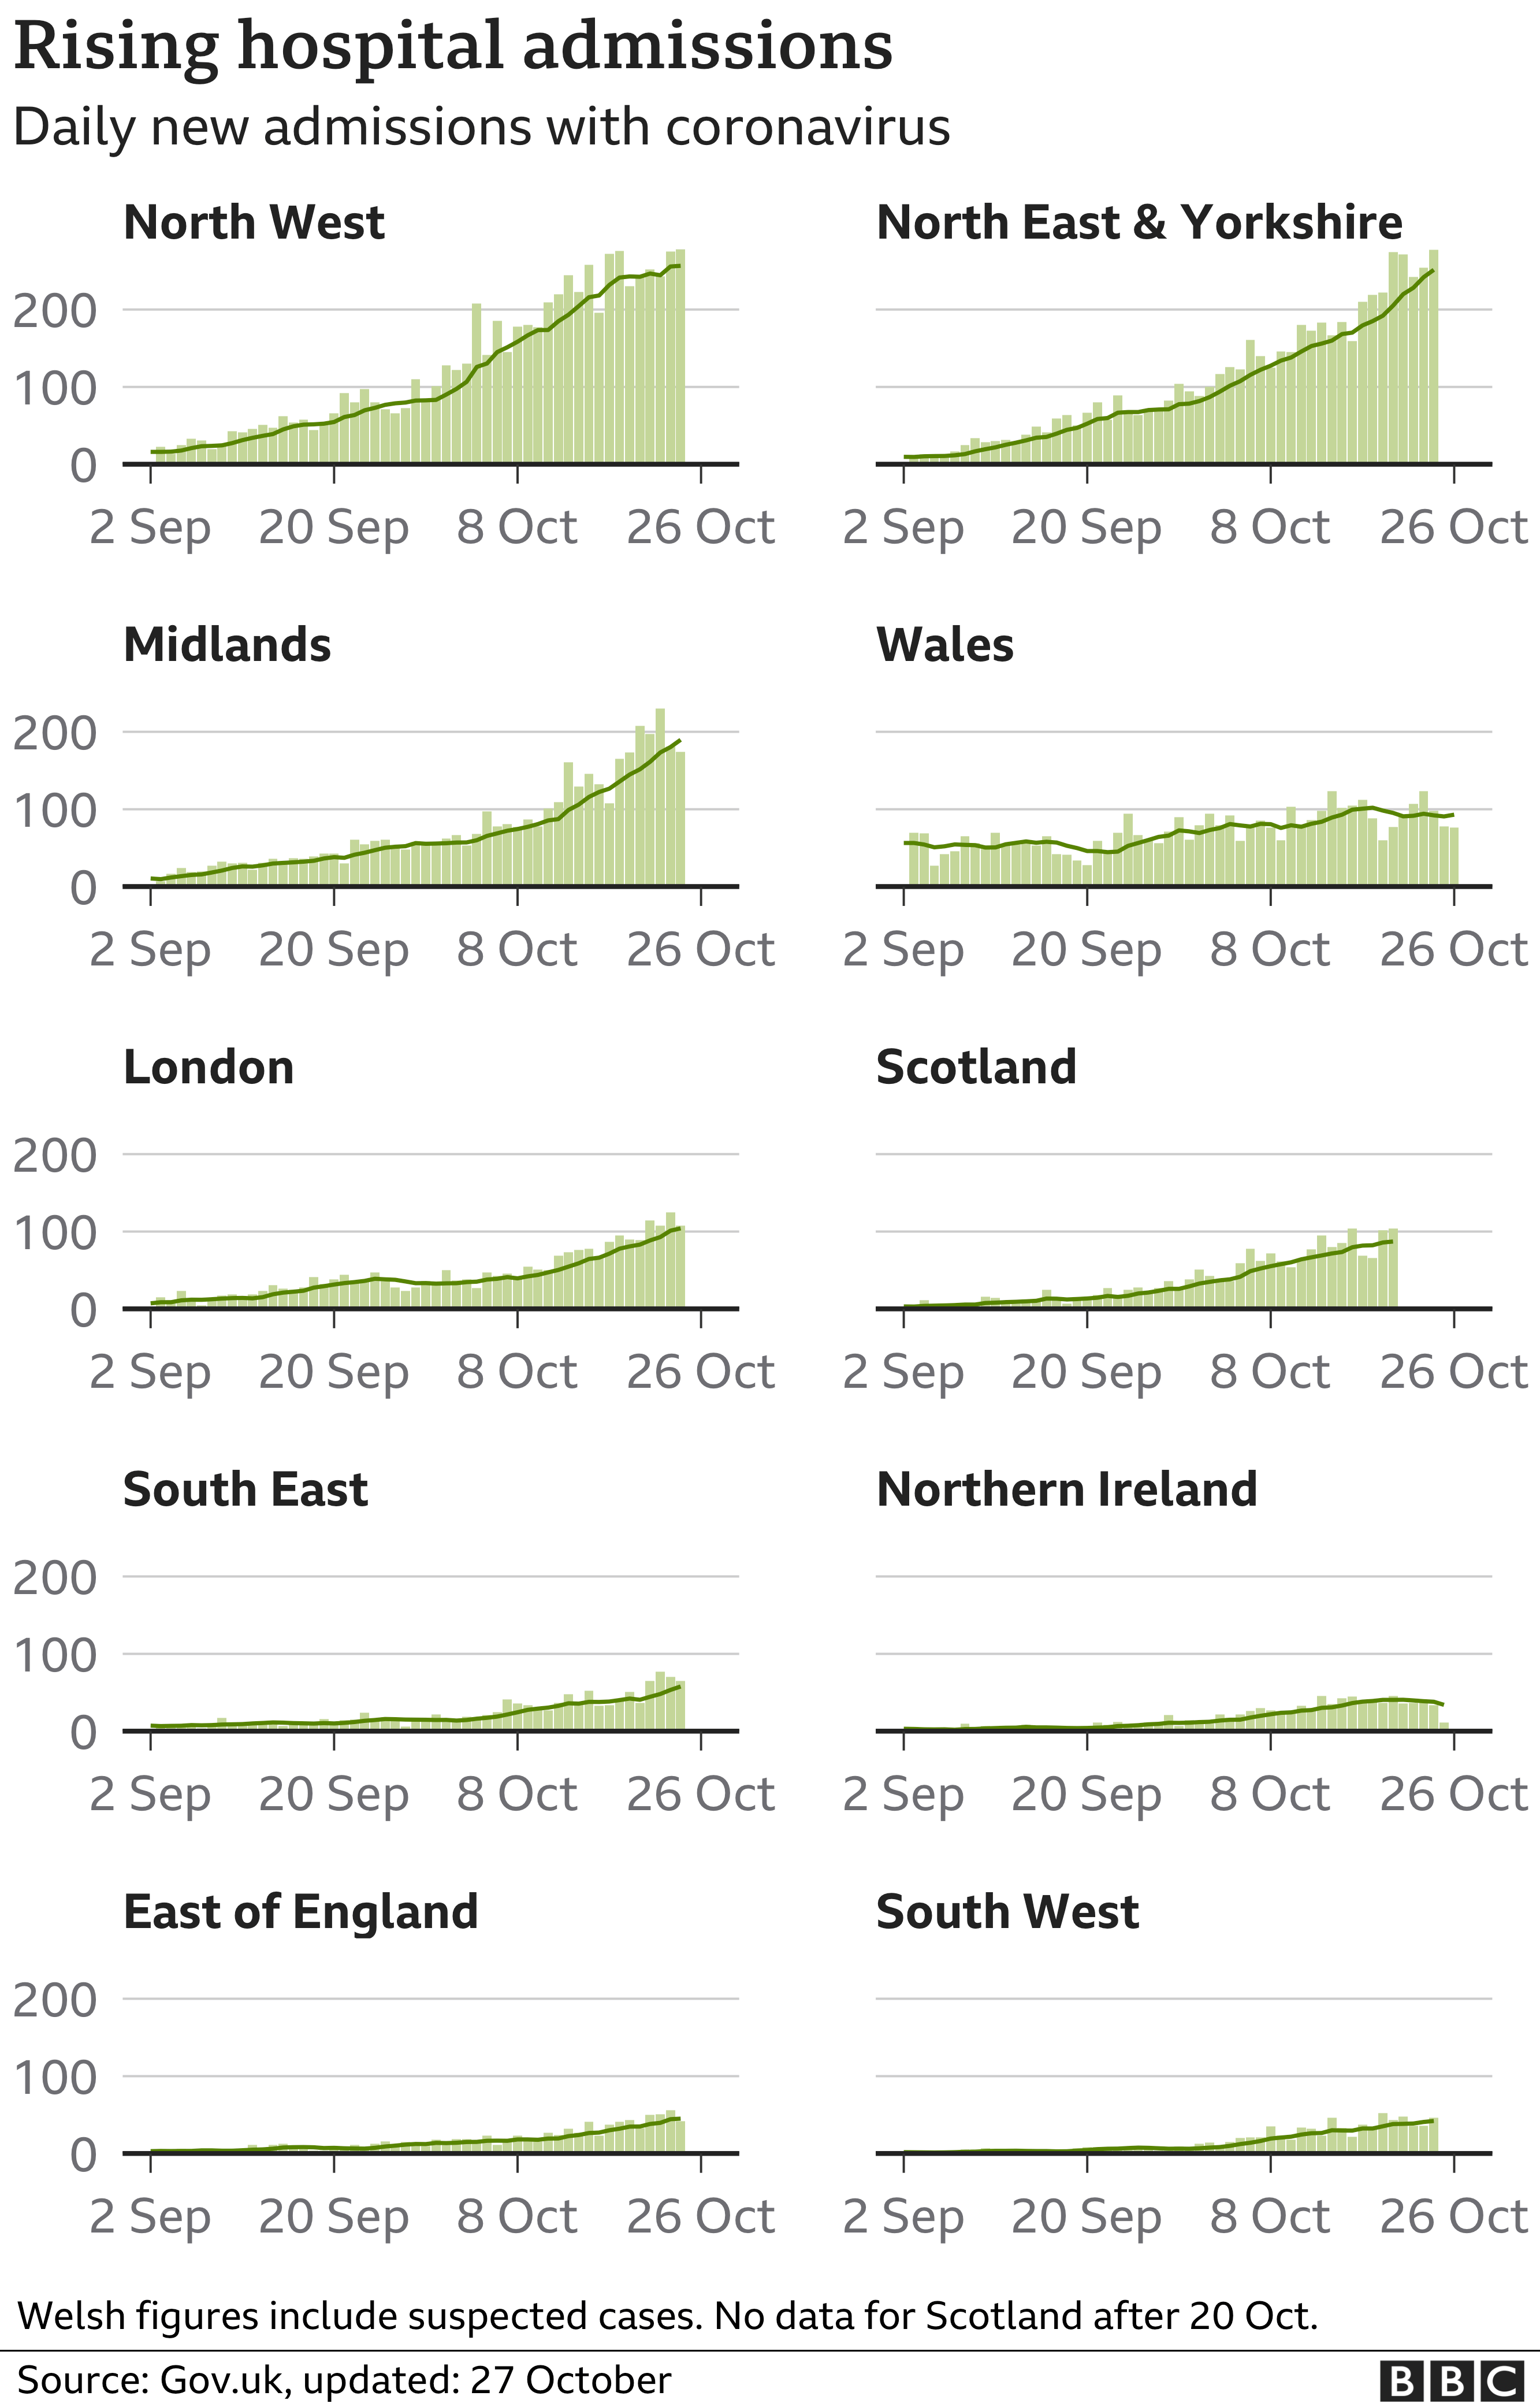 Chart shows rising hospital admissions in regions and nations of the UK